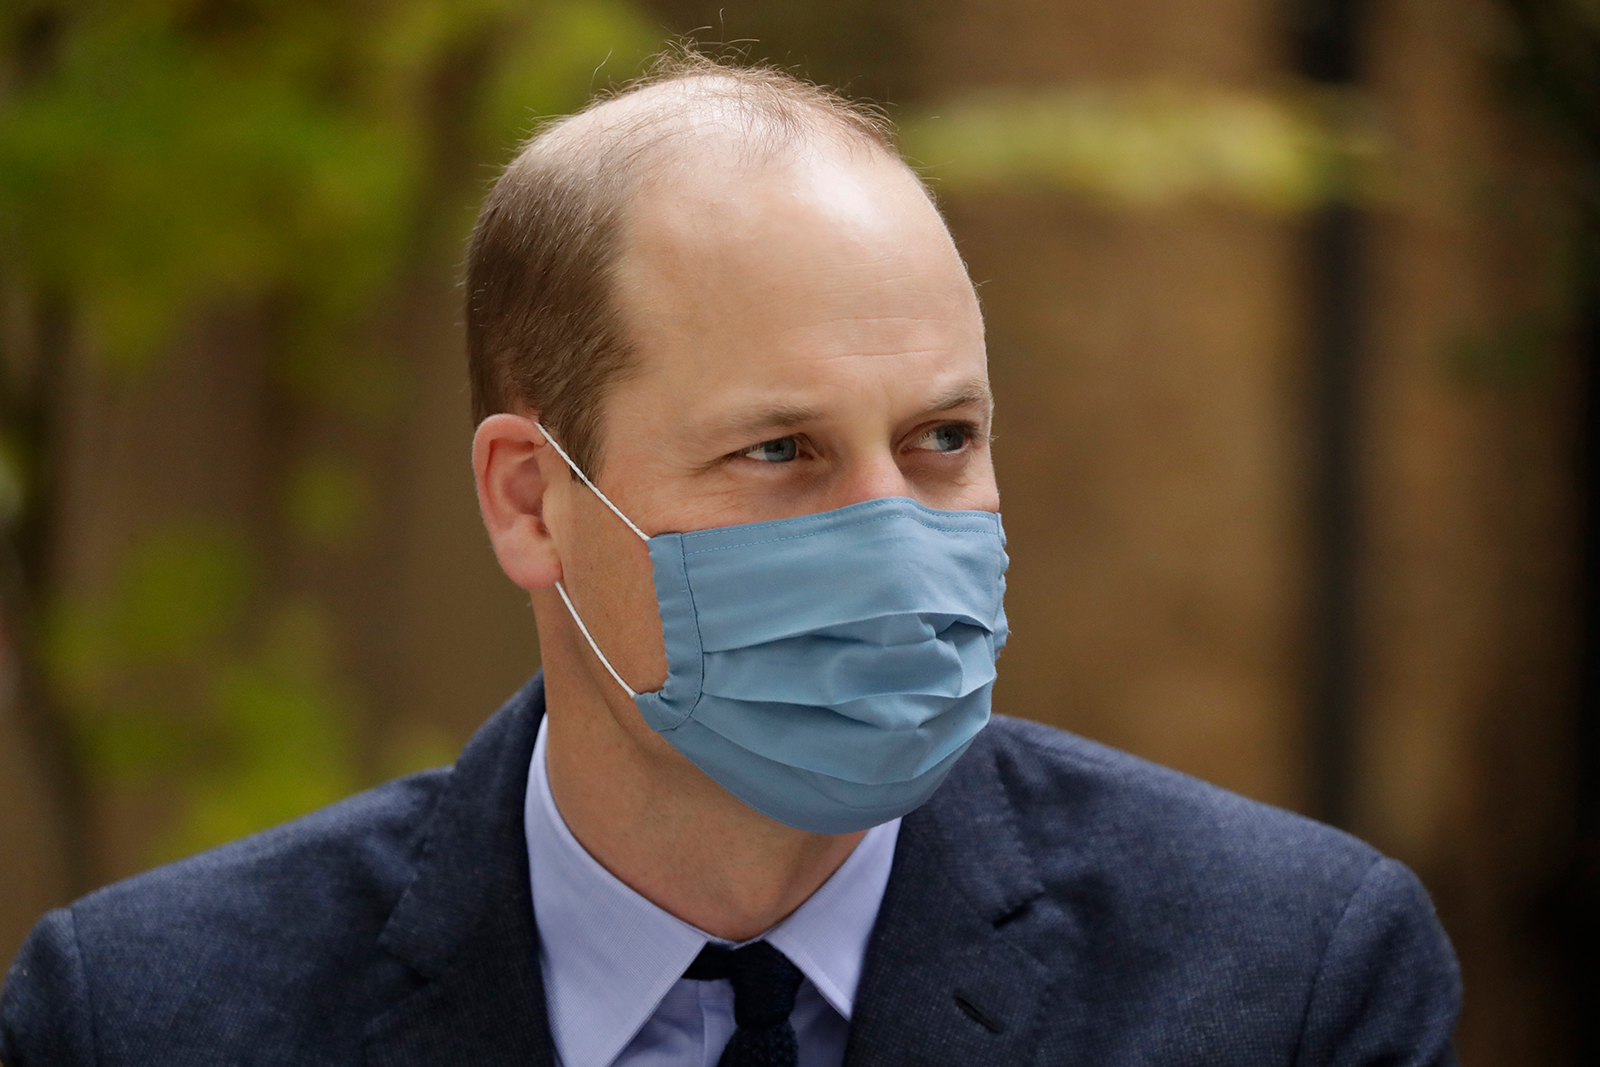 Wearing a face covering to curb the spread of coronavirus, Prince William, is seen here on a visit to St. Bartholomew's Hospital in London, England, on October 20.